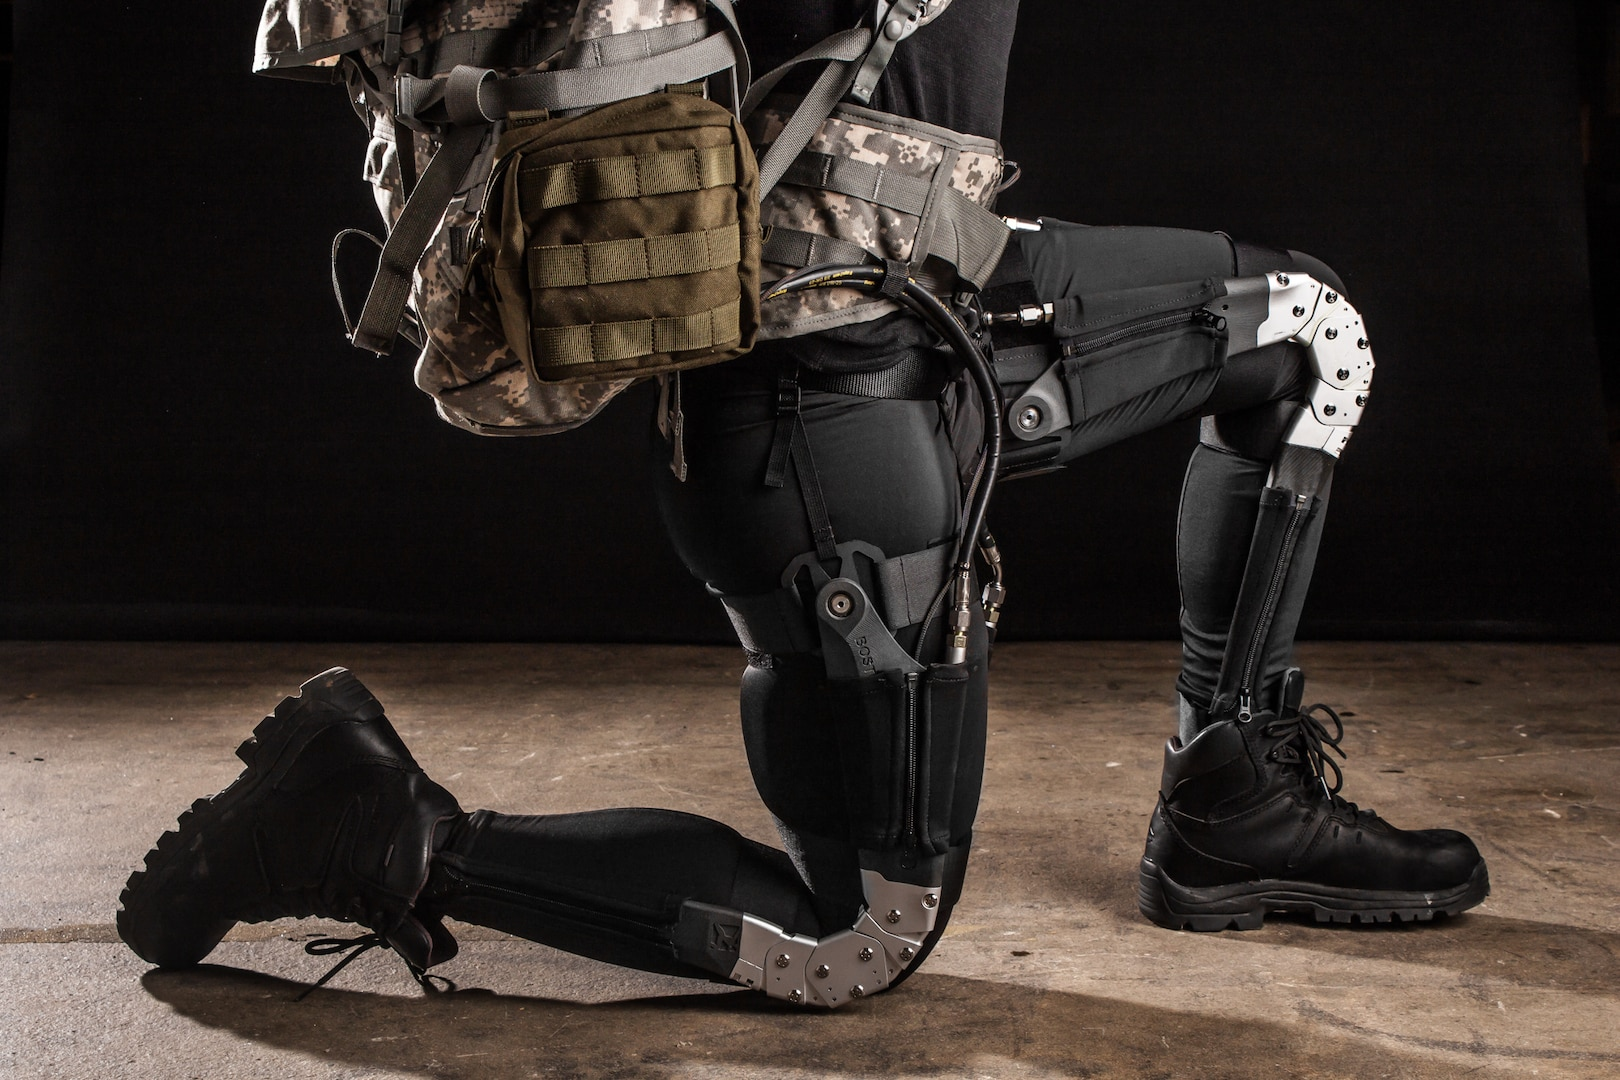 DARPA's Warrior Web project. Technological advancements could fundamentally alter the equation of women in combat.